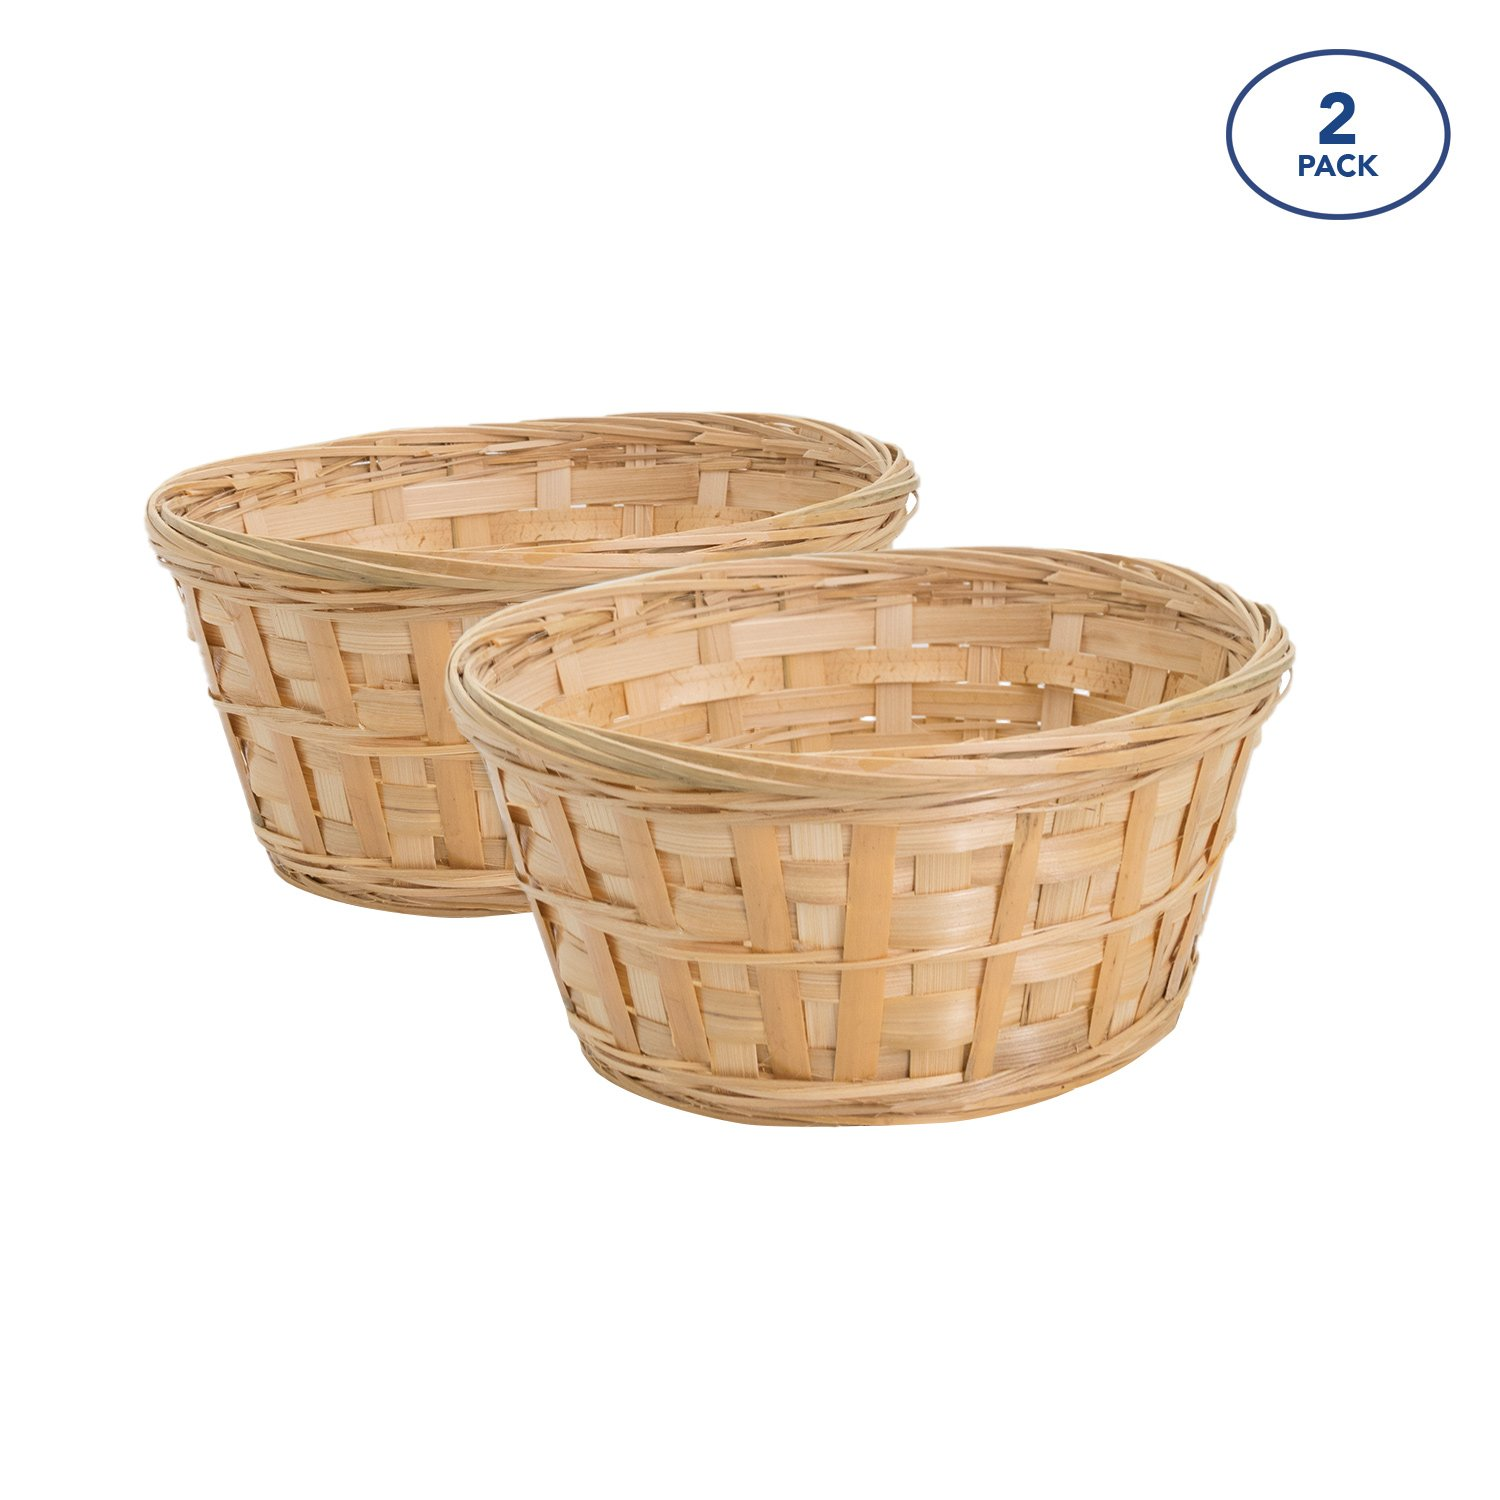 Royal Imports 8'' Round Natural Bamboo Handwoven Bread Basket 4''x8'' Braided Rim, Pack of 2